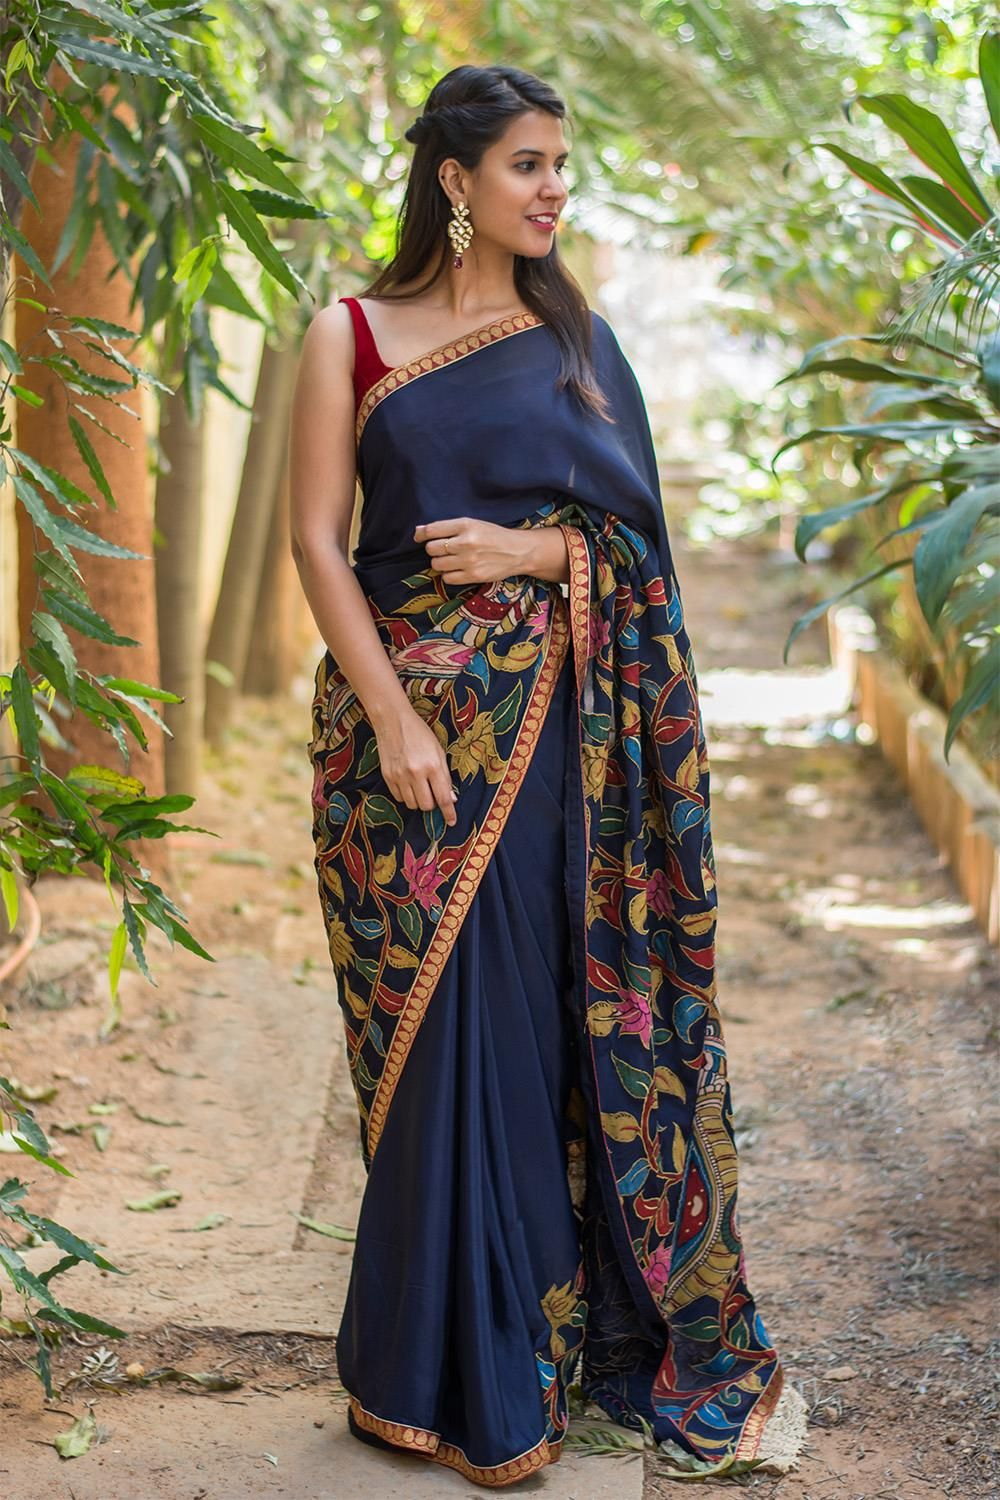 House Of Blouse Navy Blue Pure Crepe Saree With